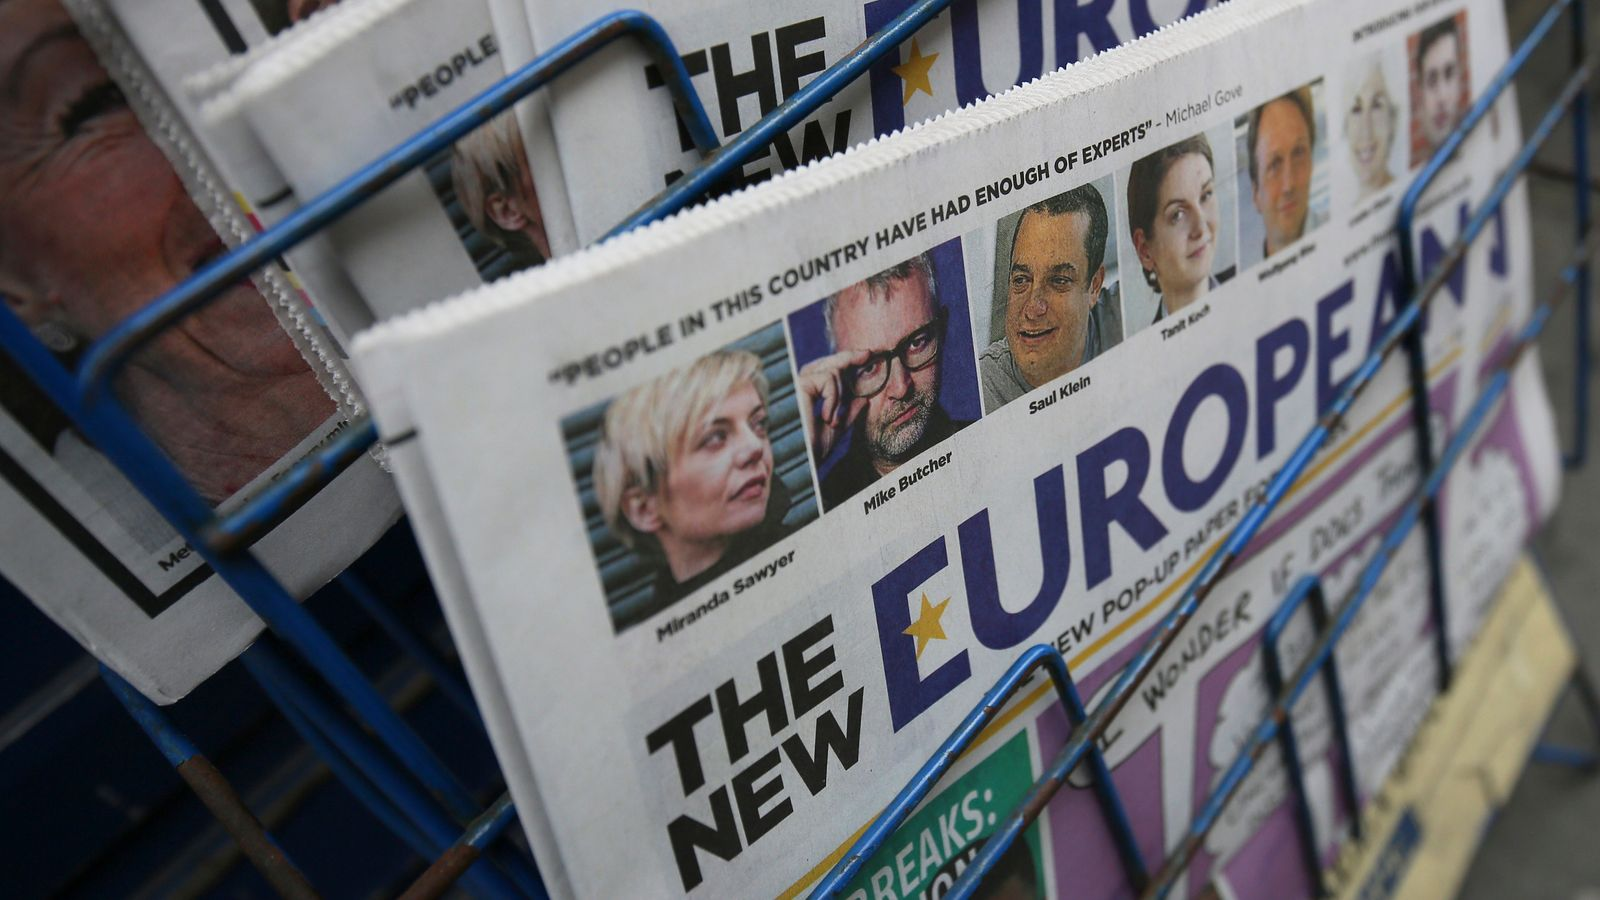 New European owner Archant gives short deadline to bidders